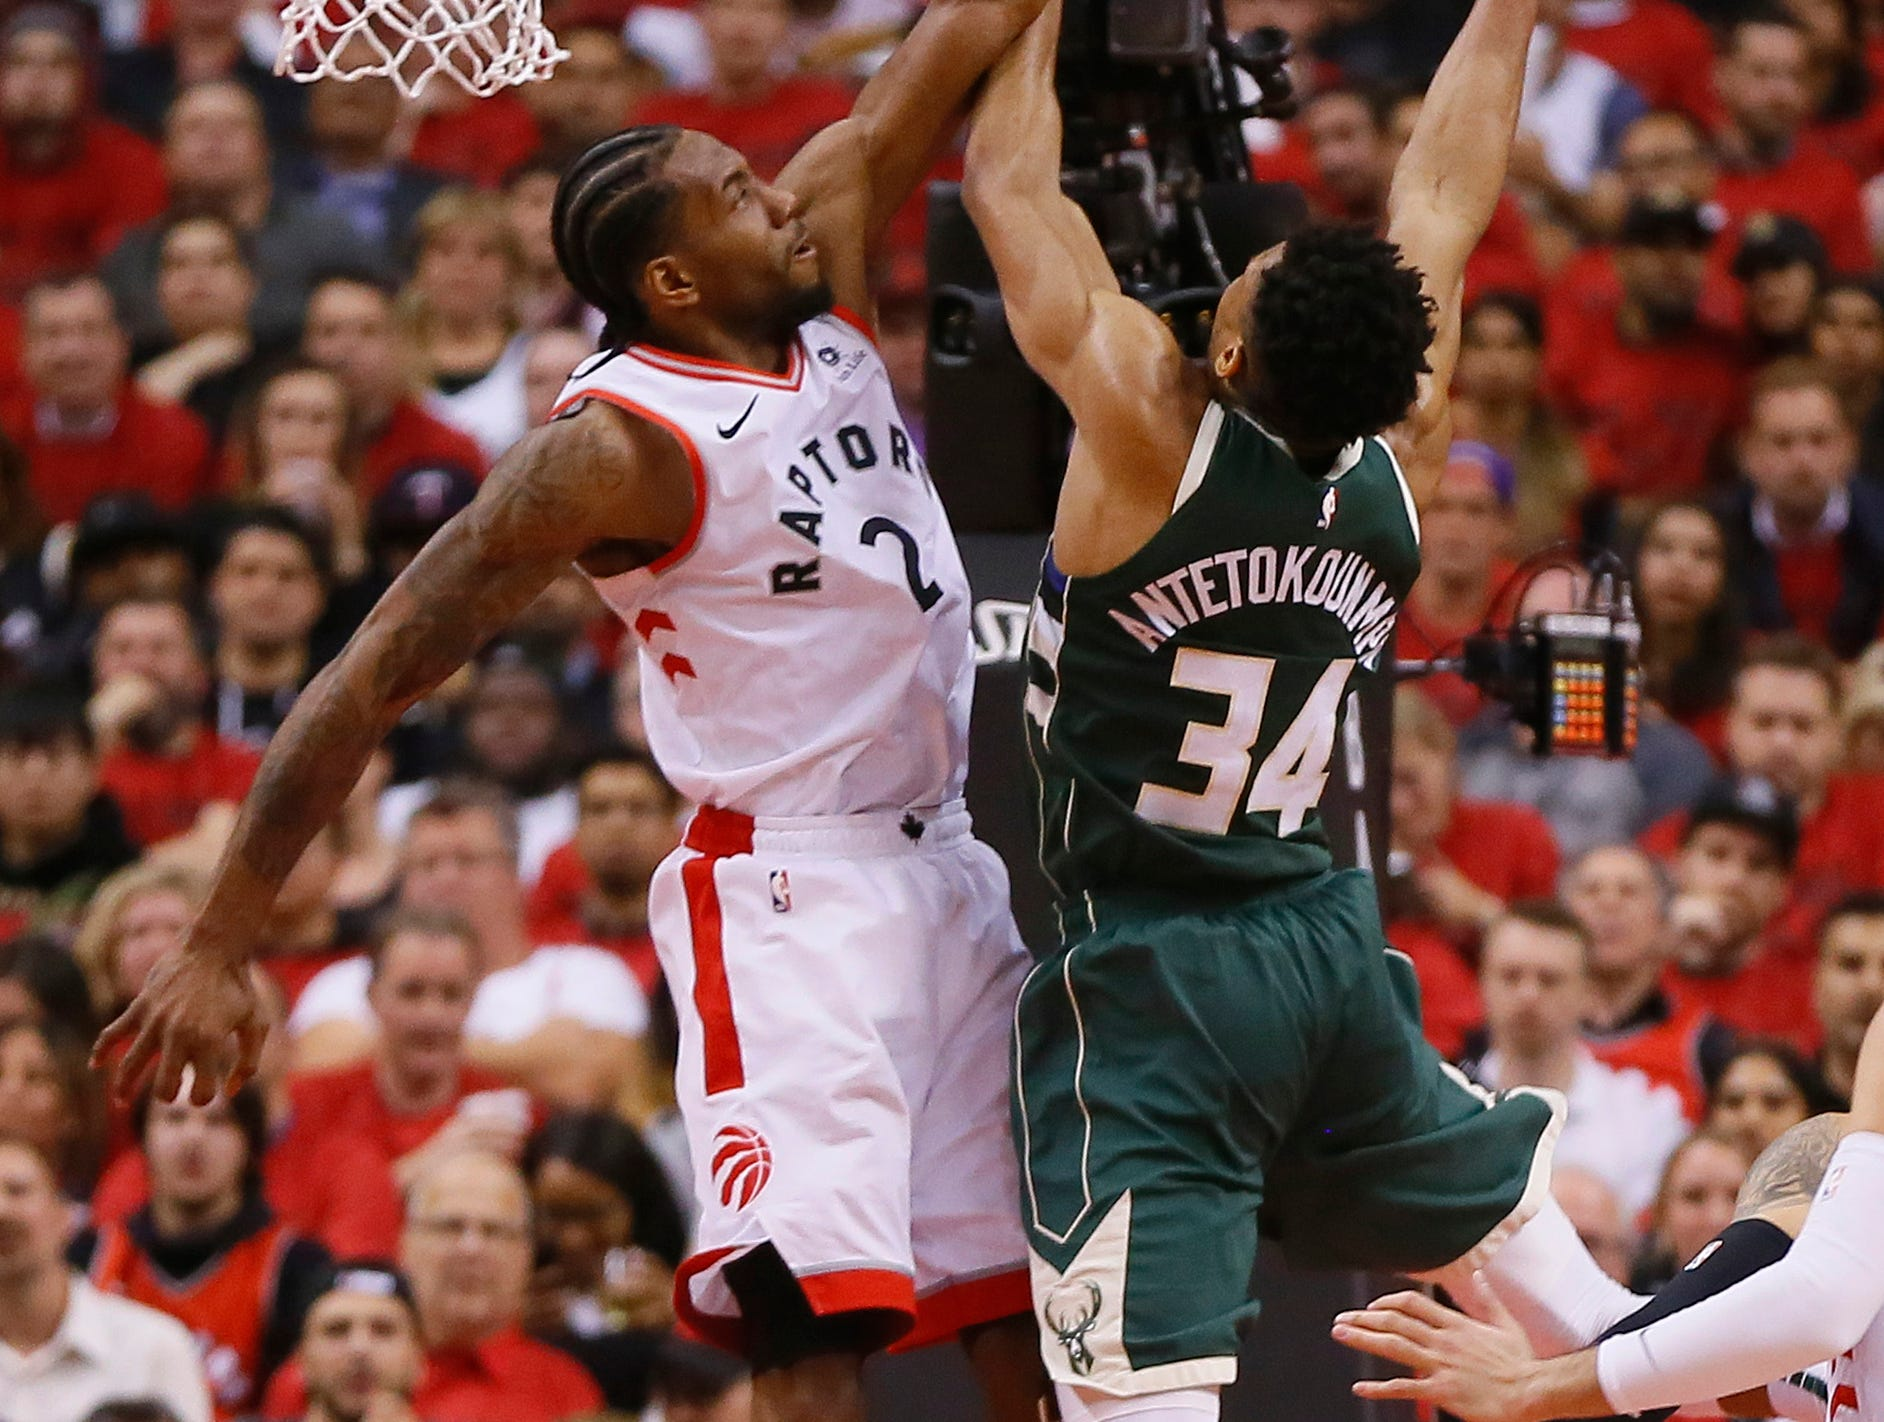 May 21: Milwaukee Bucks forward Giannis Antetokounmpo shoots the ball as Toronto Raptors forward Kawhi Leonard defends during the first half of Game 4.